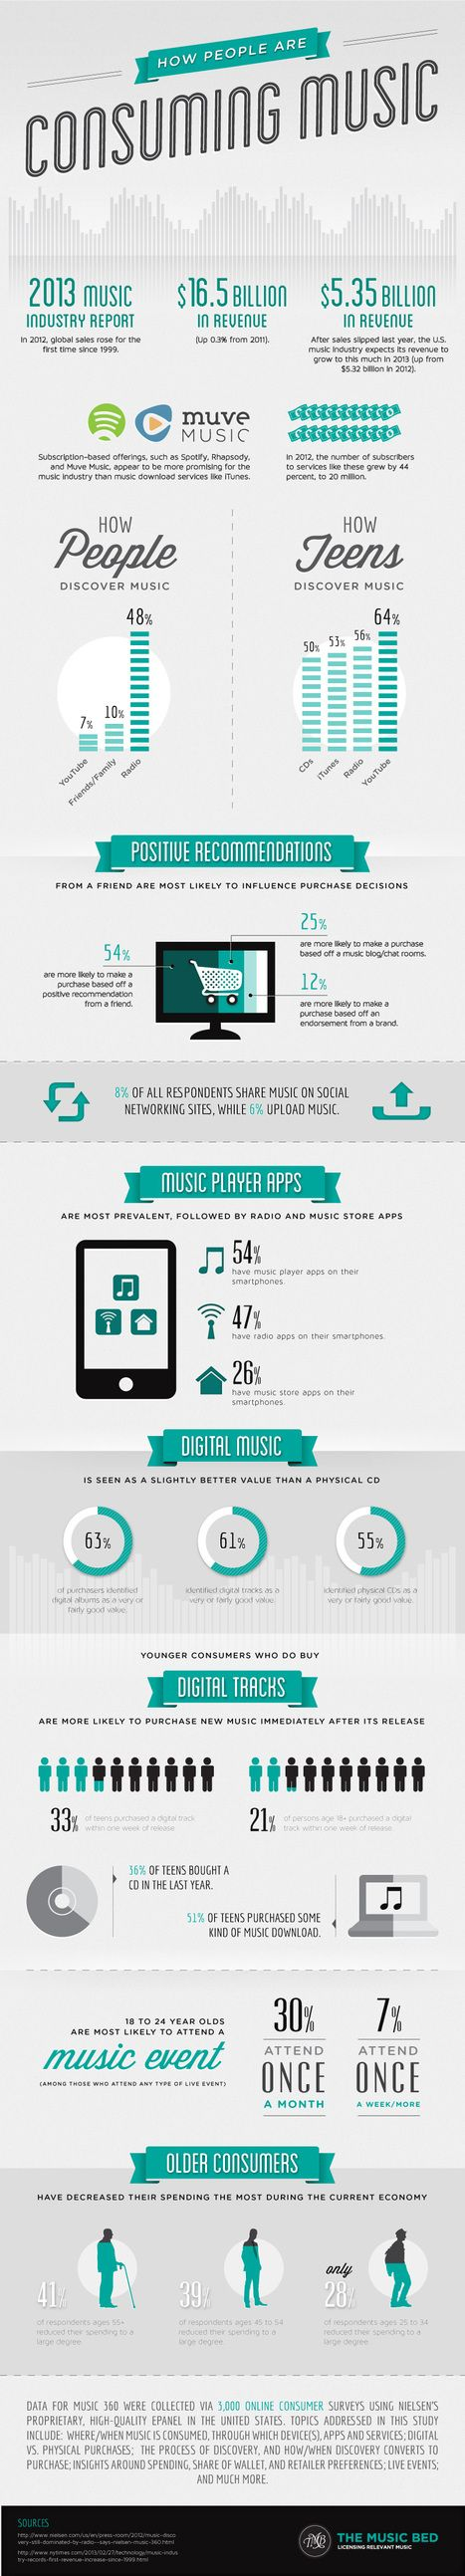 How We Discover And Consume Music [INFOGRAPHIC] - hypebot | the psychology of music | Scoop.it